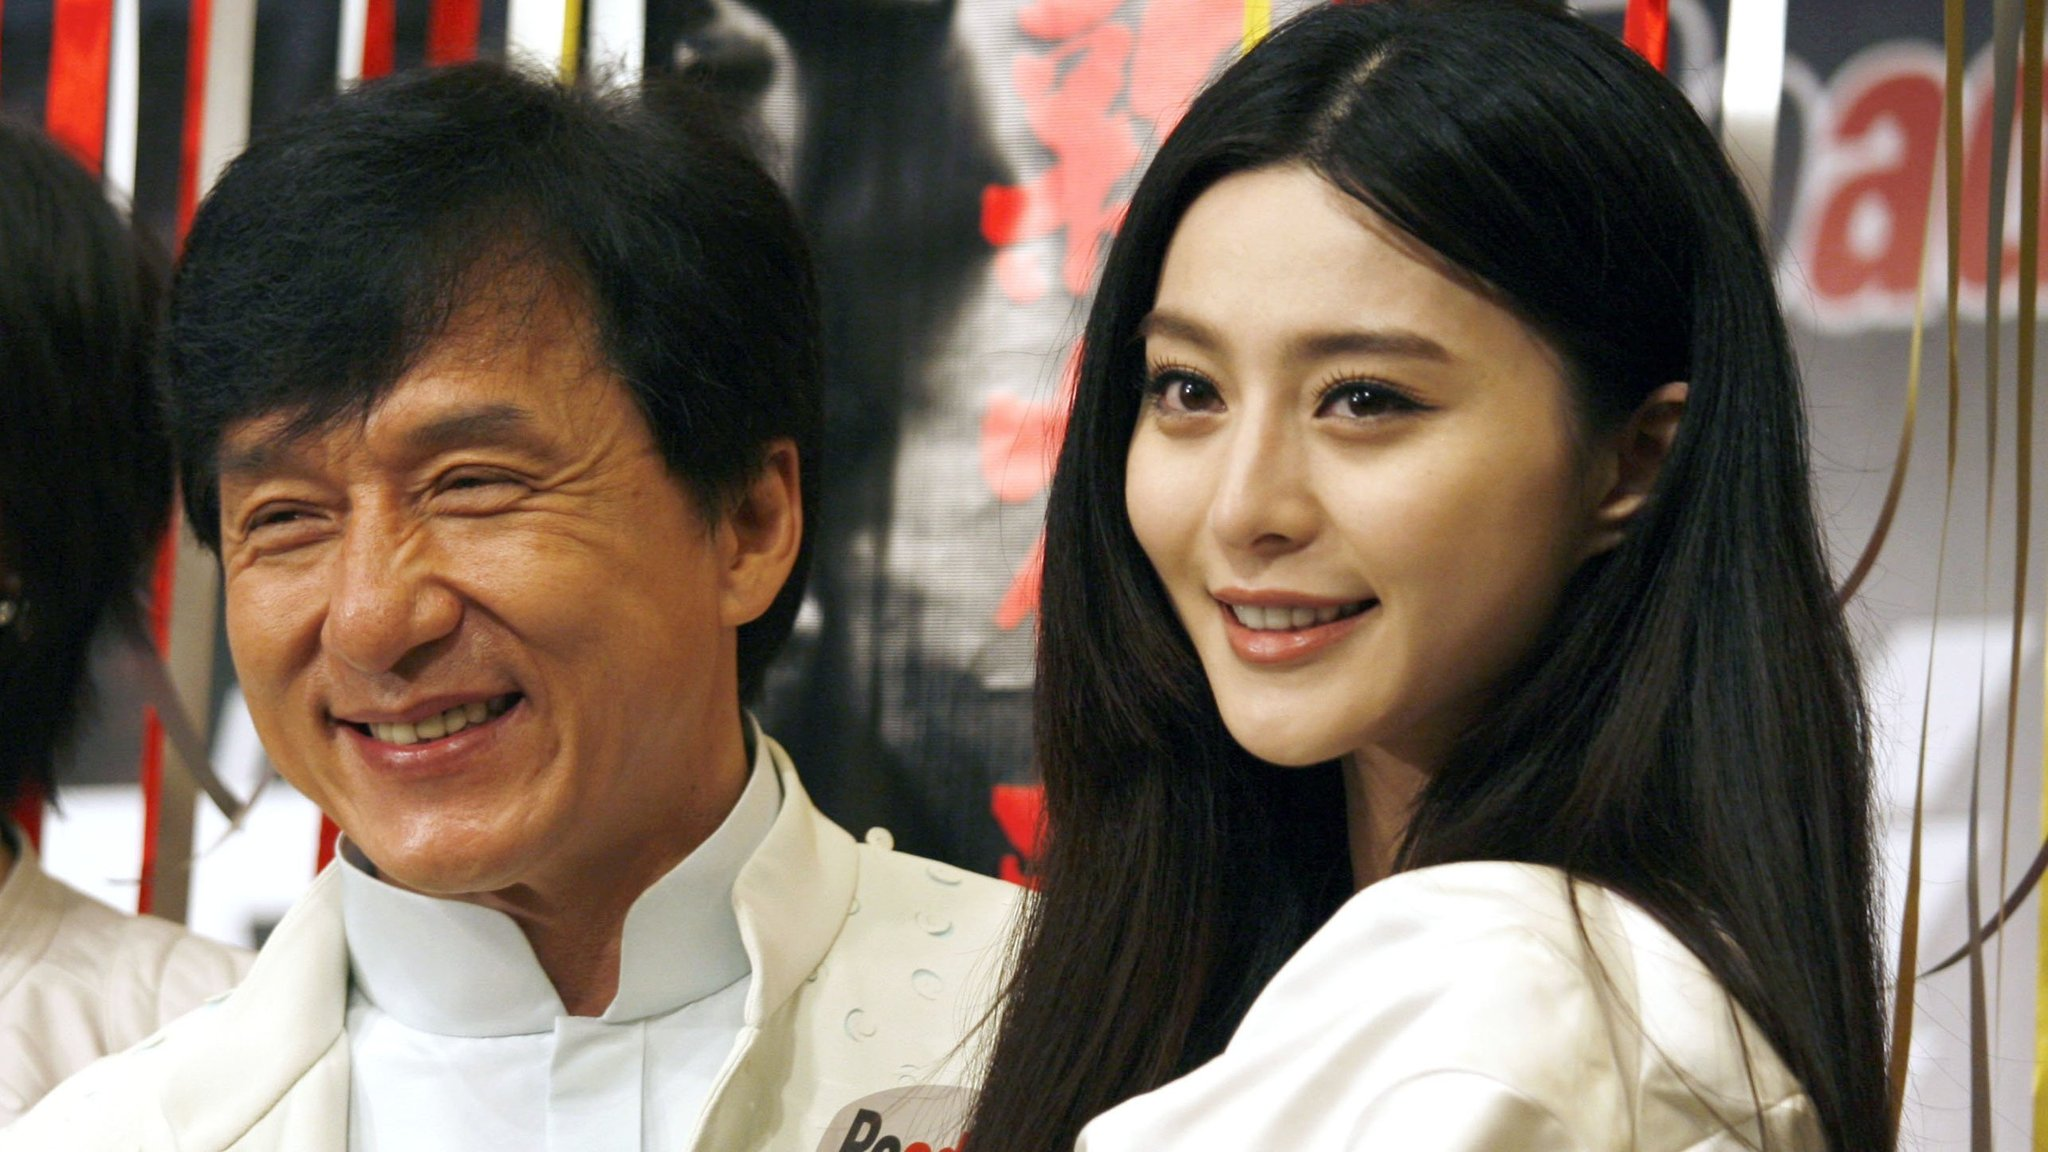 China stars' income soars on TV deals and endorsements | Financial Times